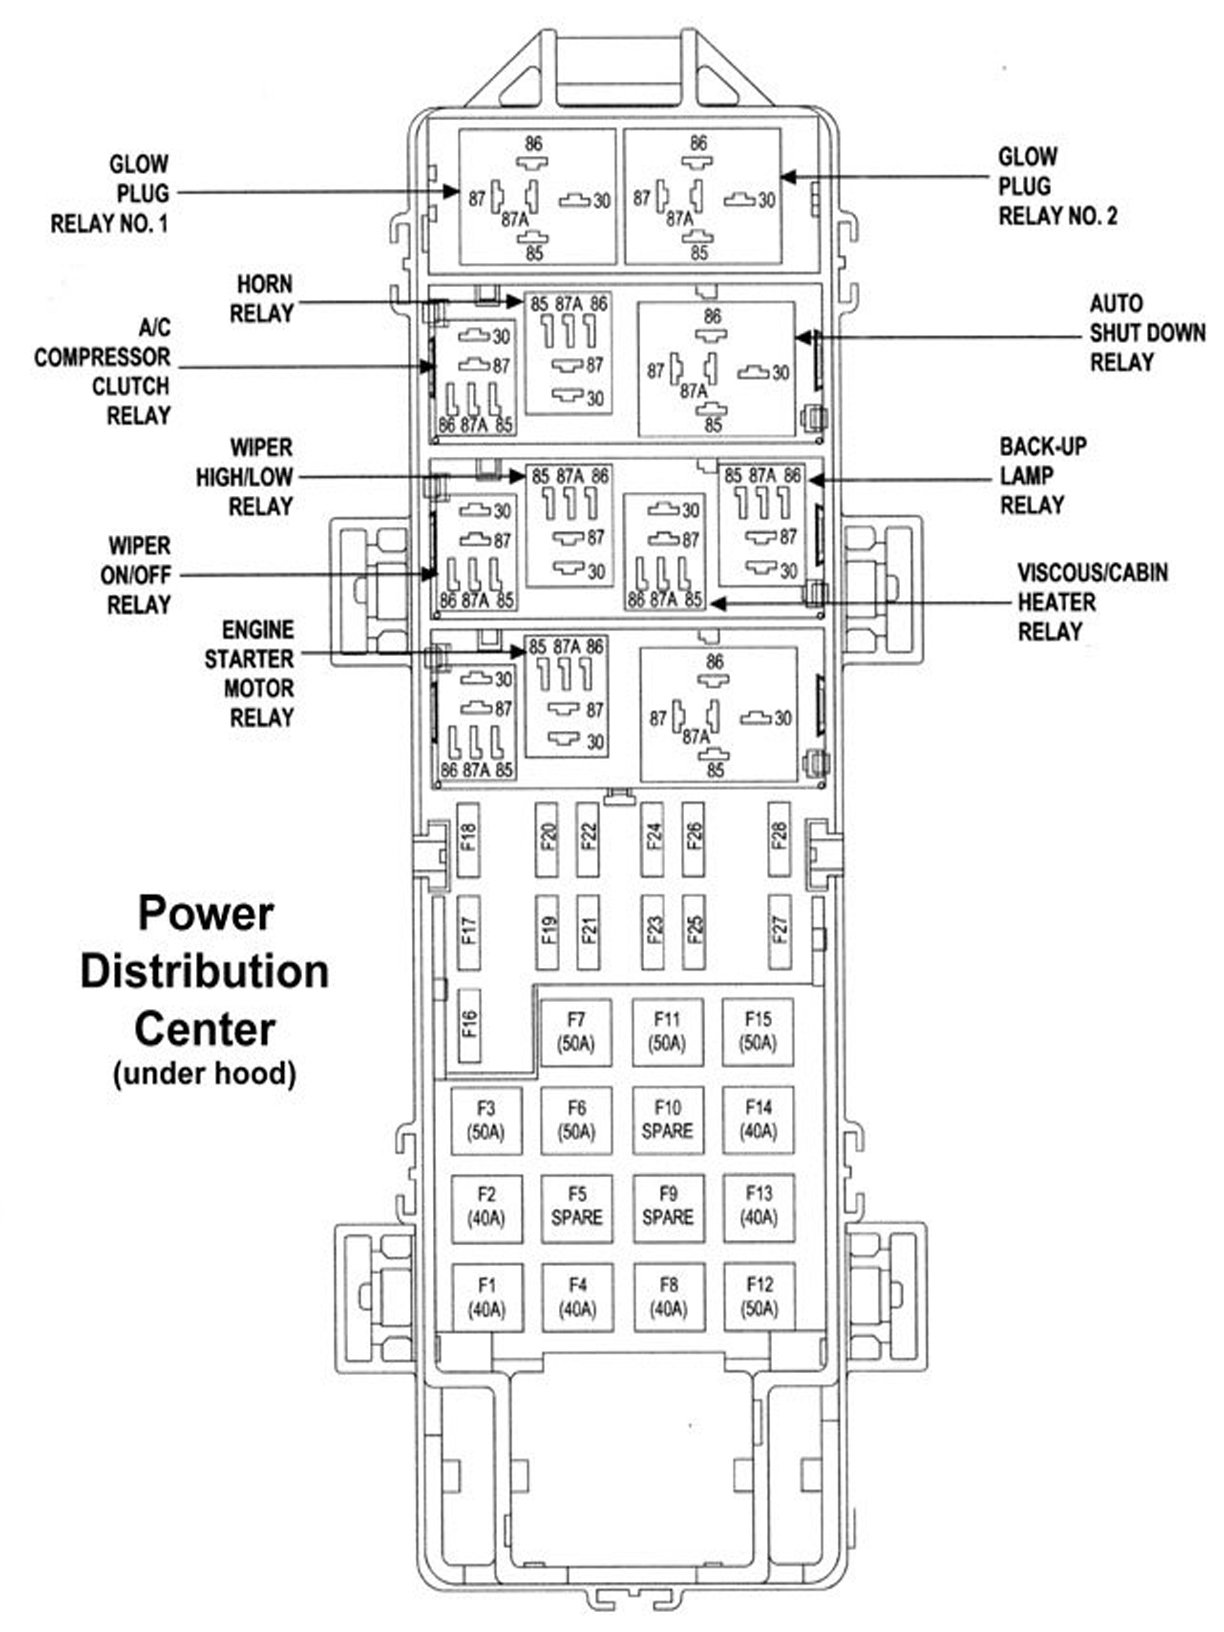 AAAAAAAAug 28 Fuse Box 04 91415 jeep grand cherokee wj 1999 to 2004 fuse box diagram cherokeeforum  at gsmx.co